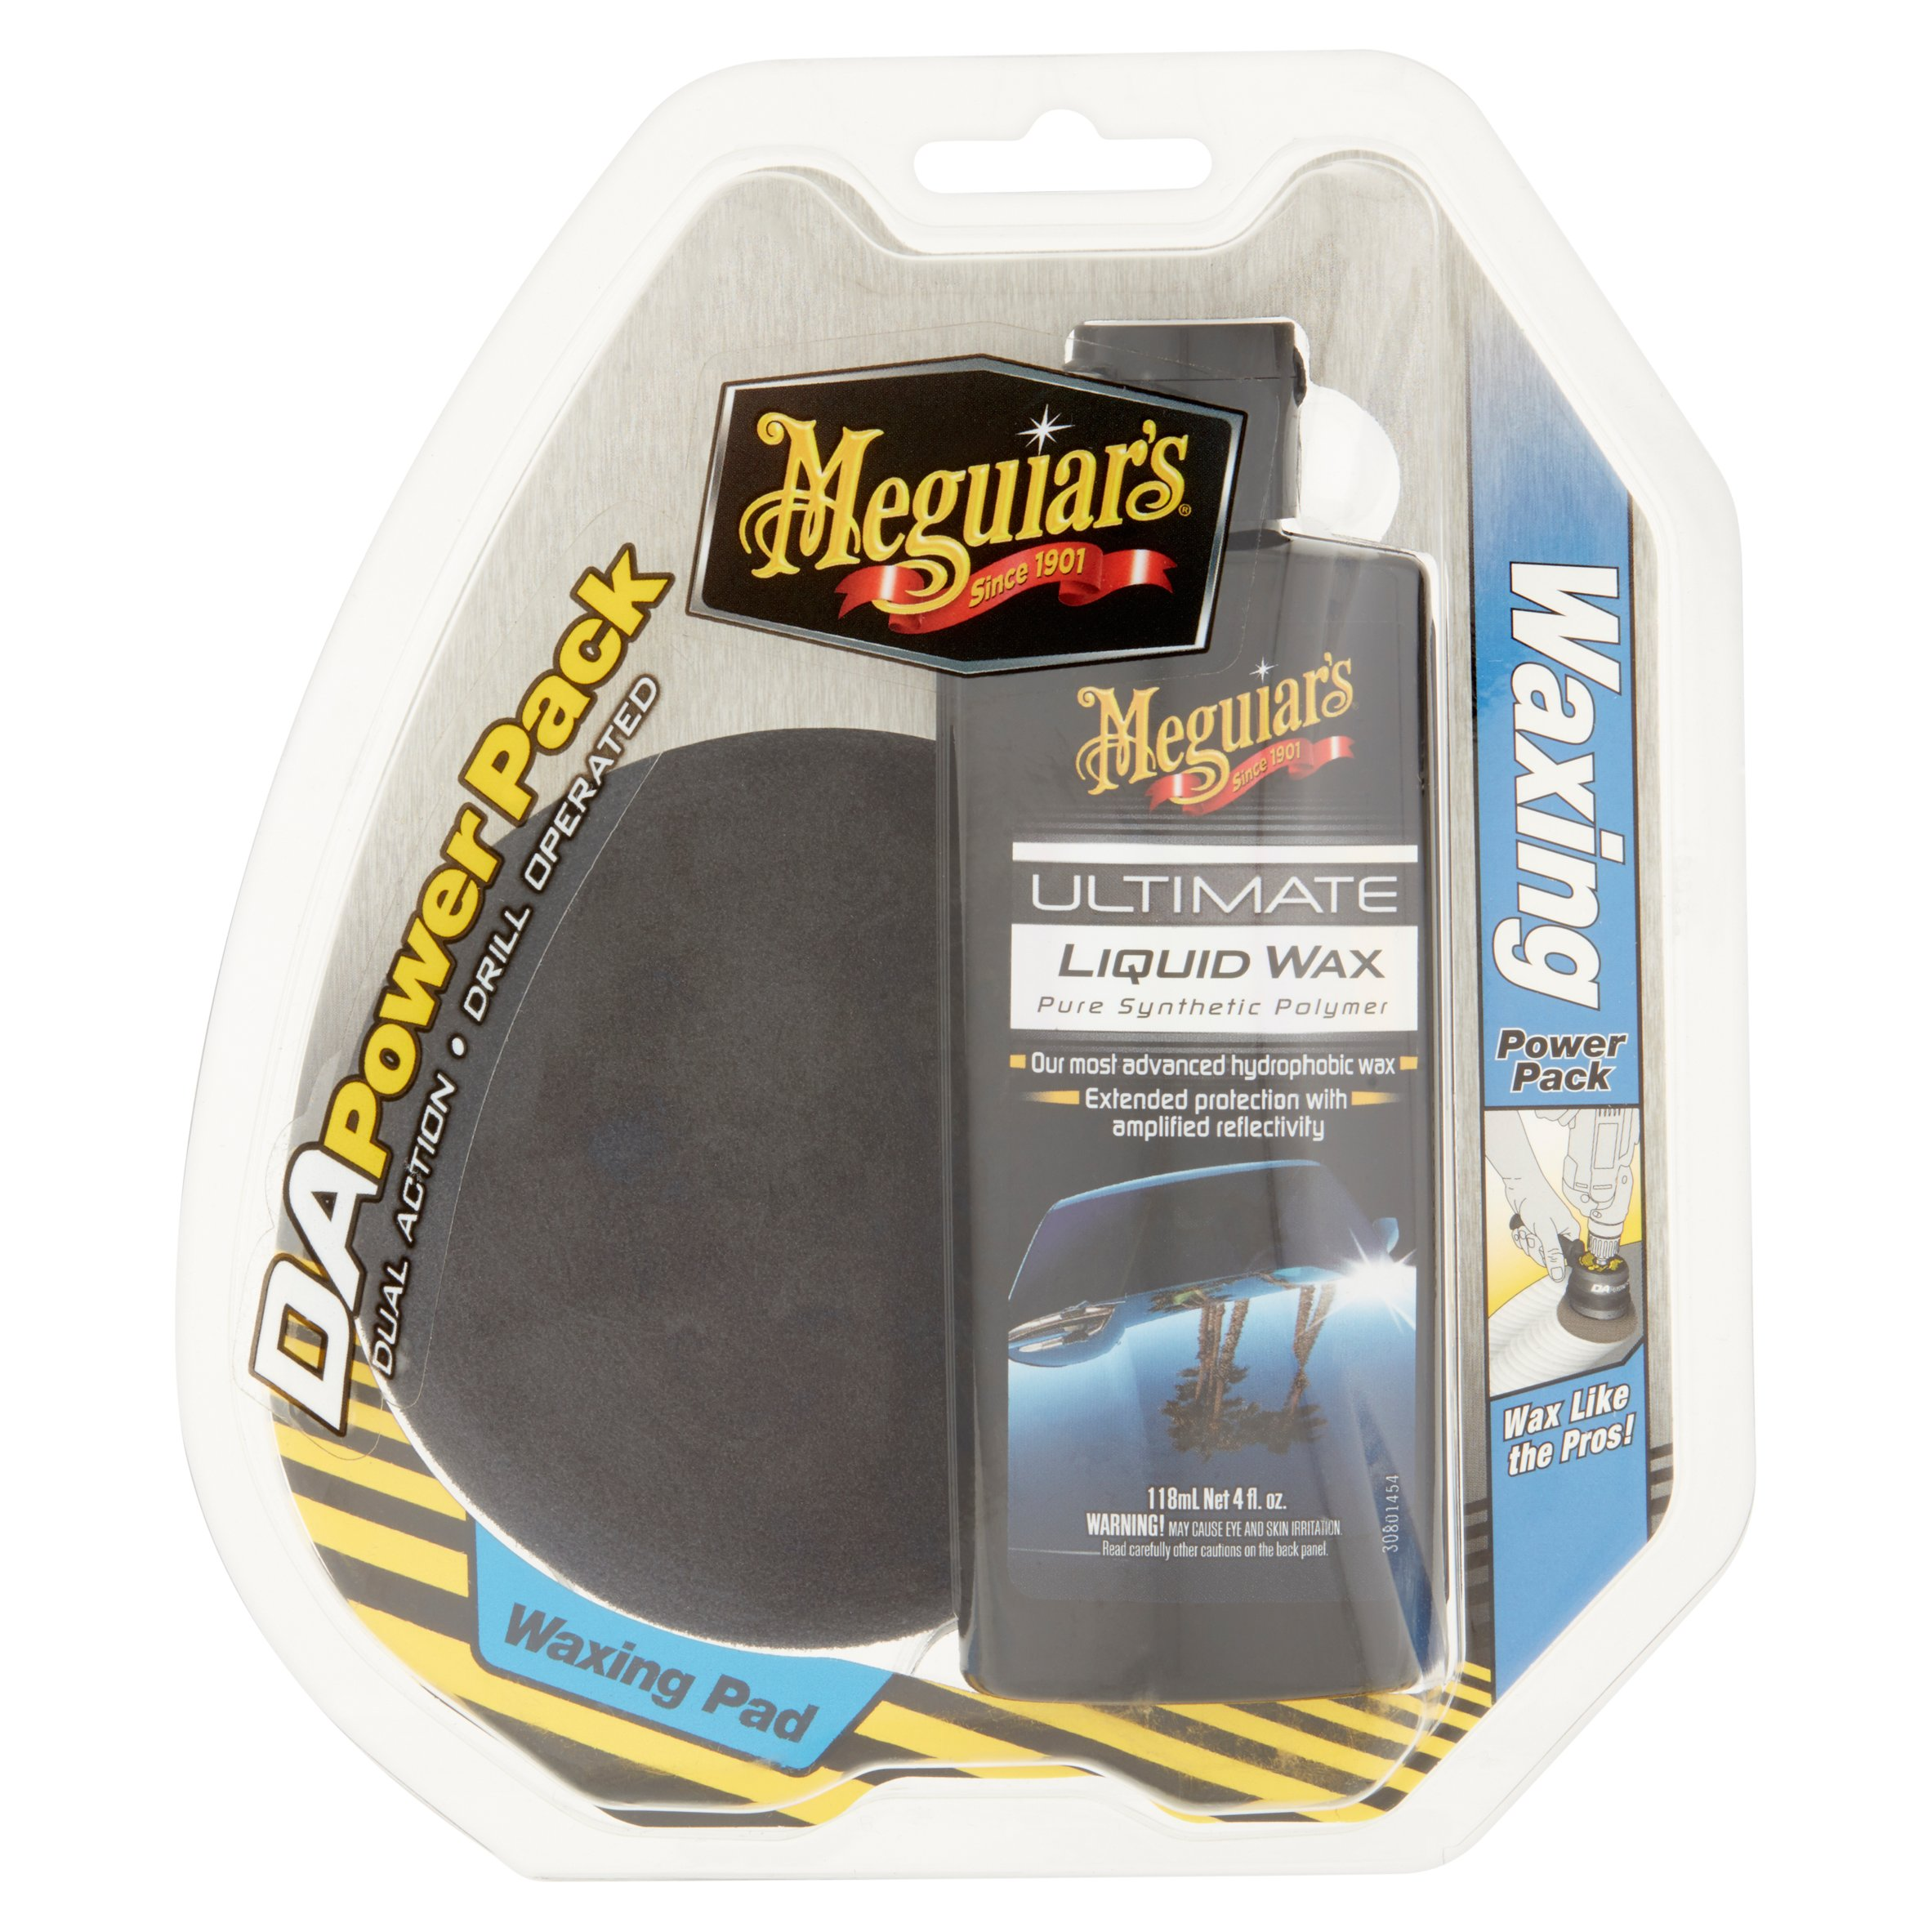 Meguiar's DA Power Pack Ultimate Liquid Wax and Waxing Pad